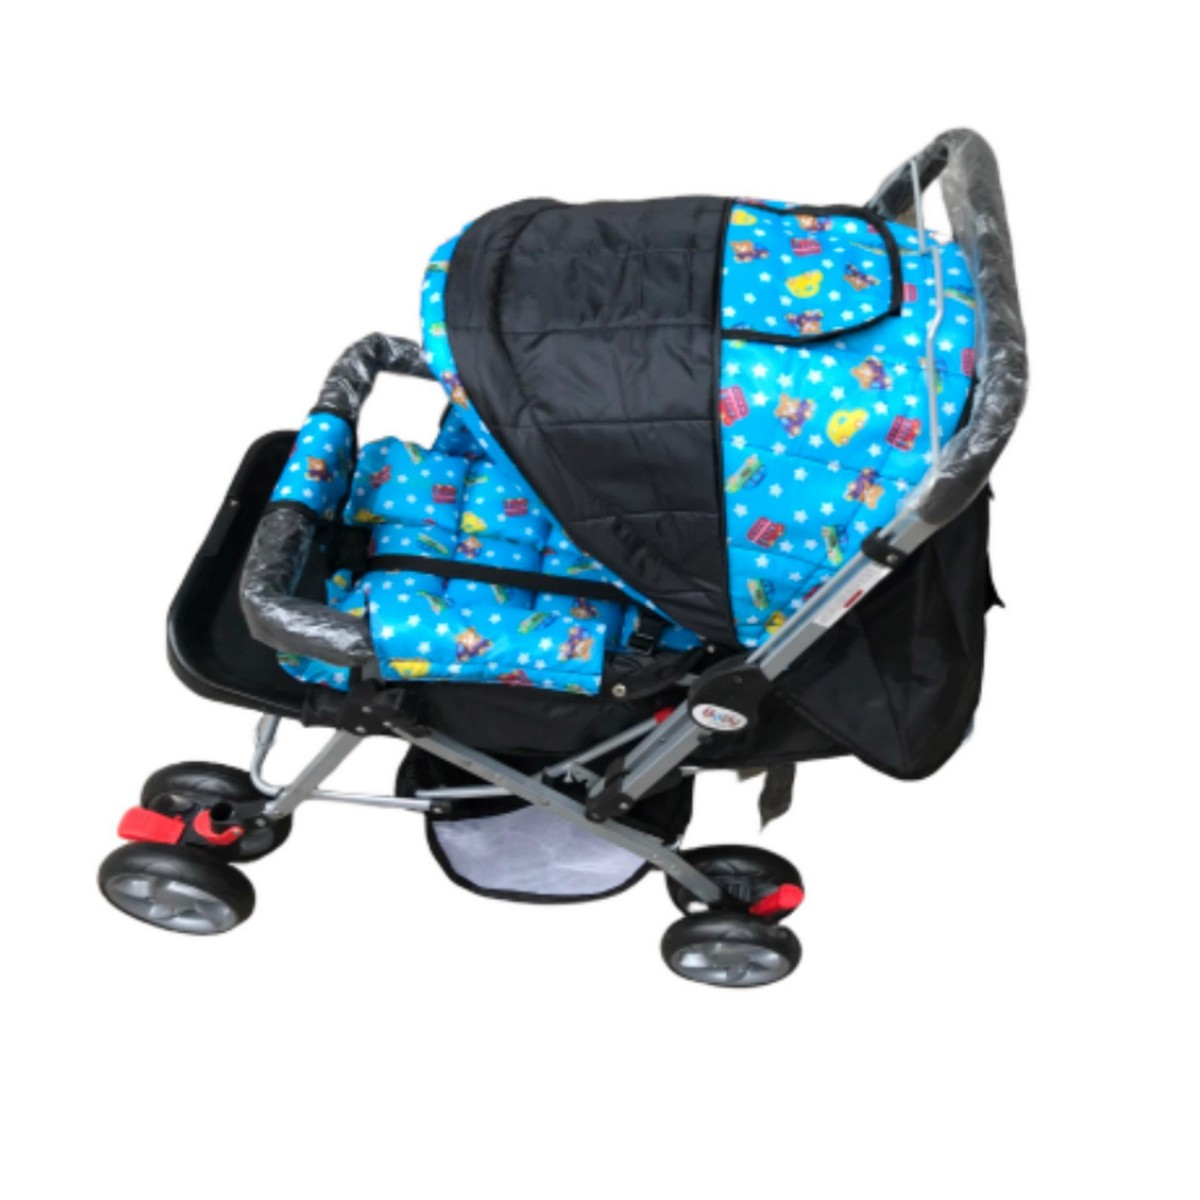 8 Big Tyres Alloy Foldable Baby Stroller Pram For Newborn Double Handle